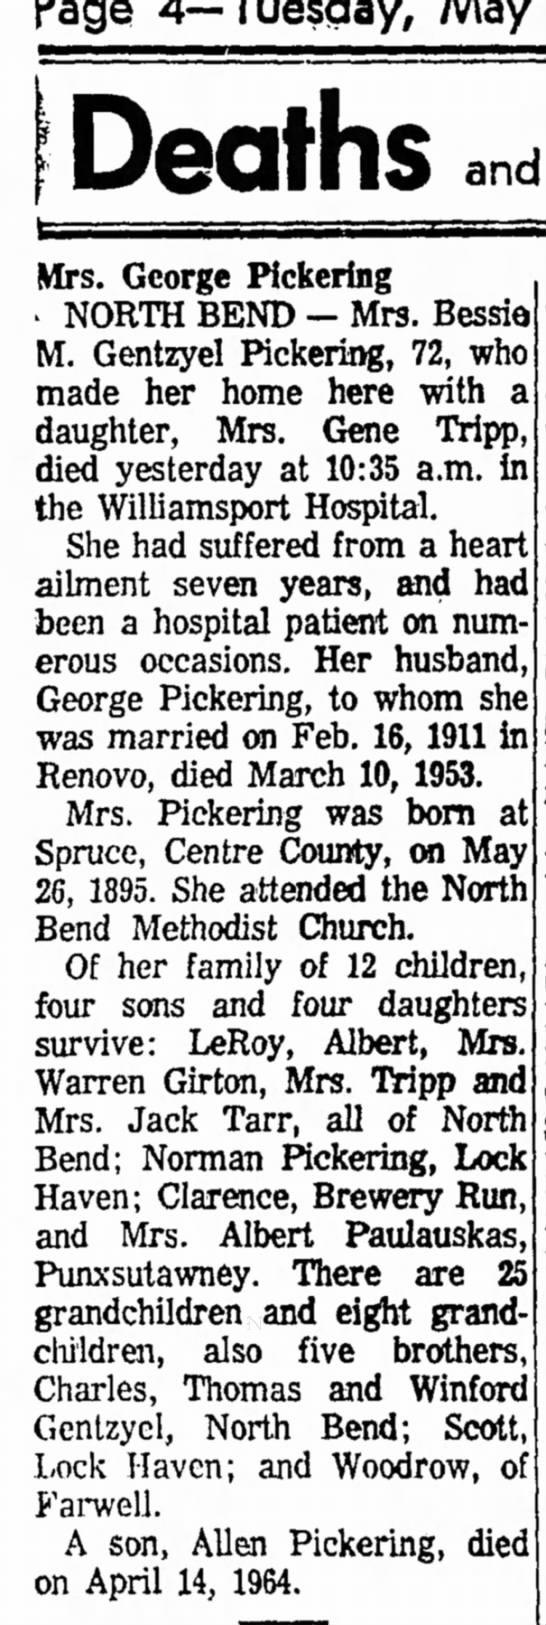 Page 4 - Tuesday, May 14, 1968 The Lock Haven Express - Page 4—Tuesday, May Deaths and Mrs. George...